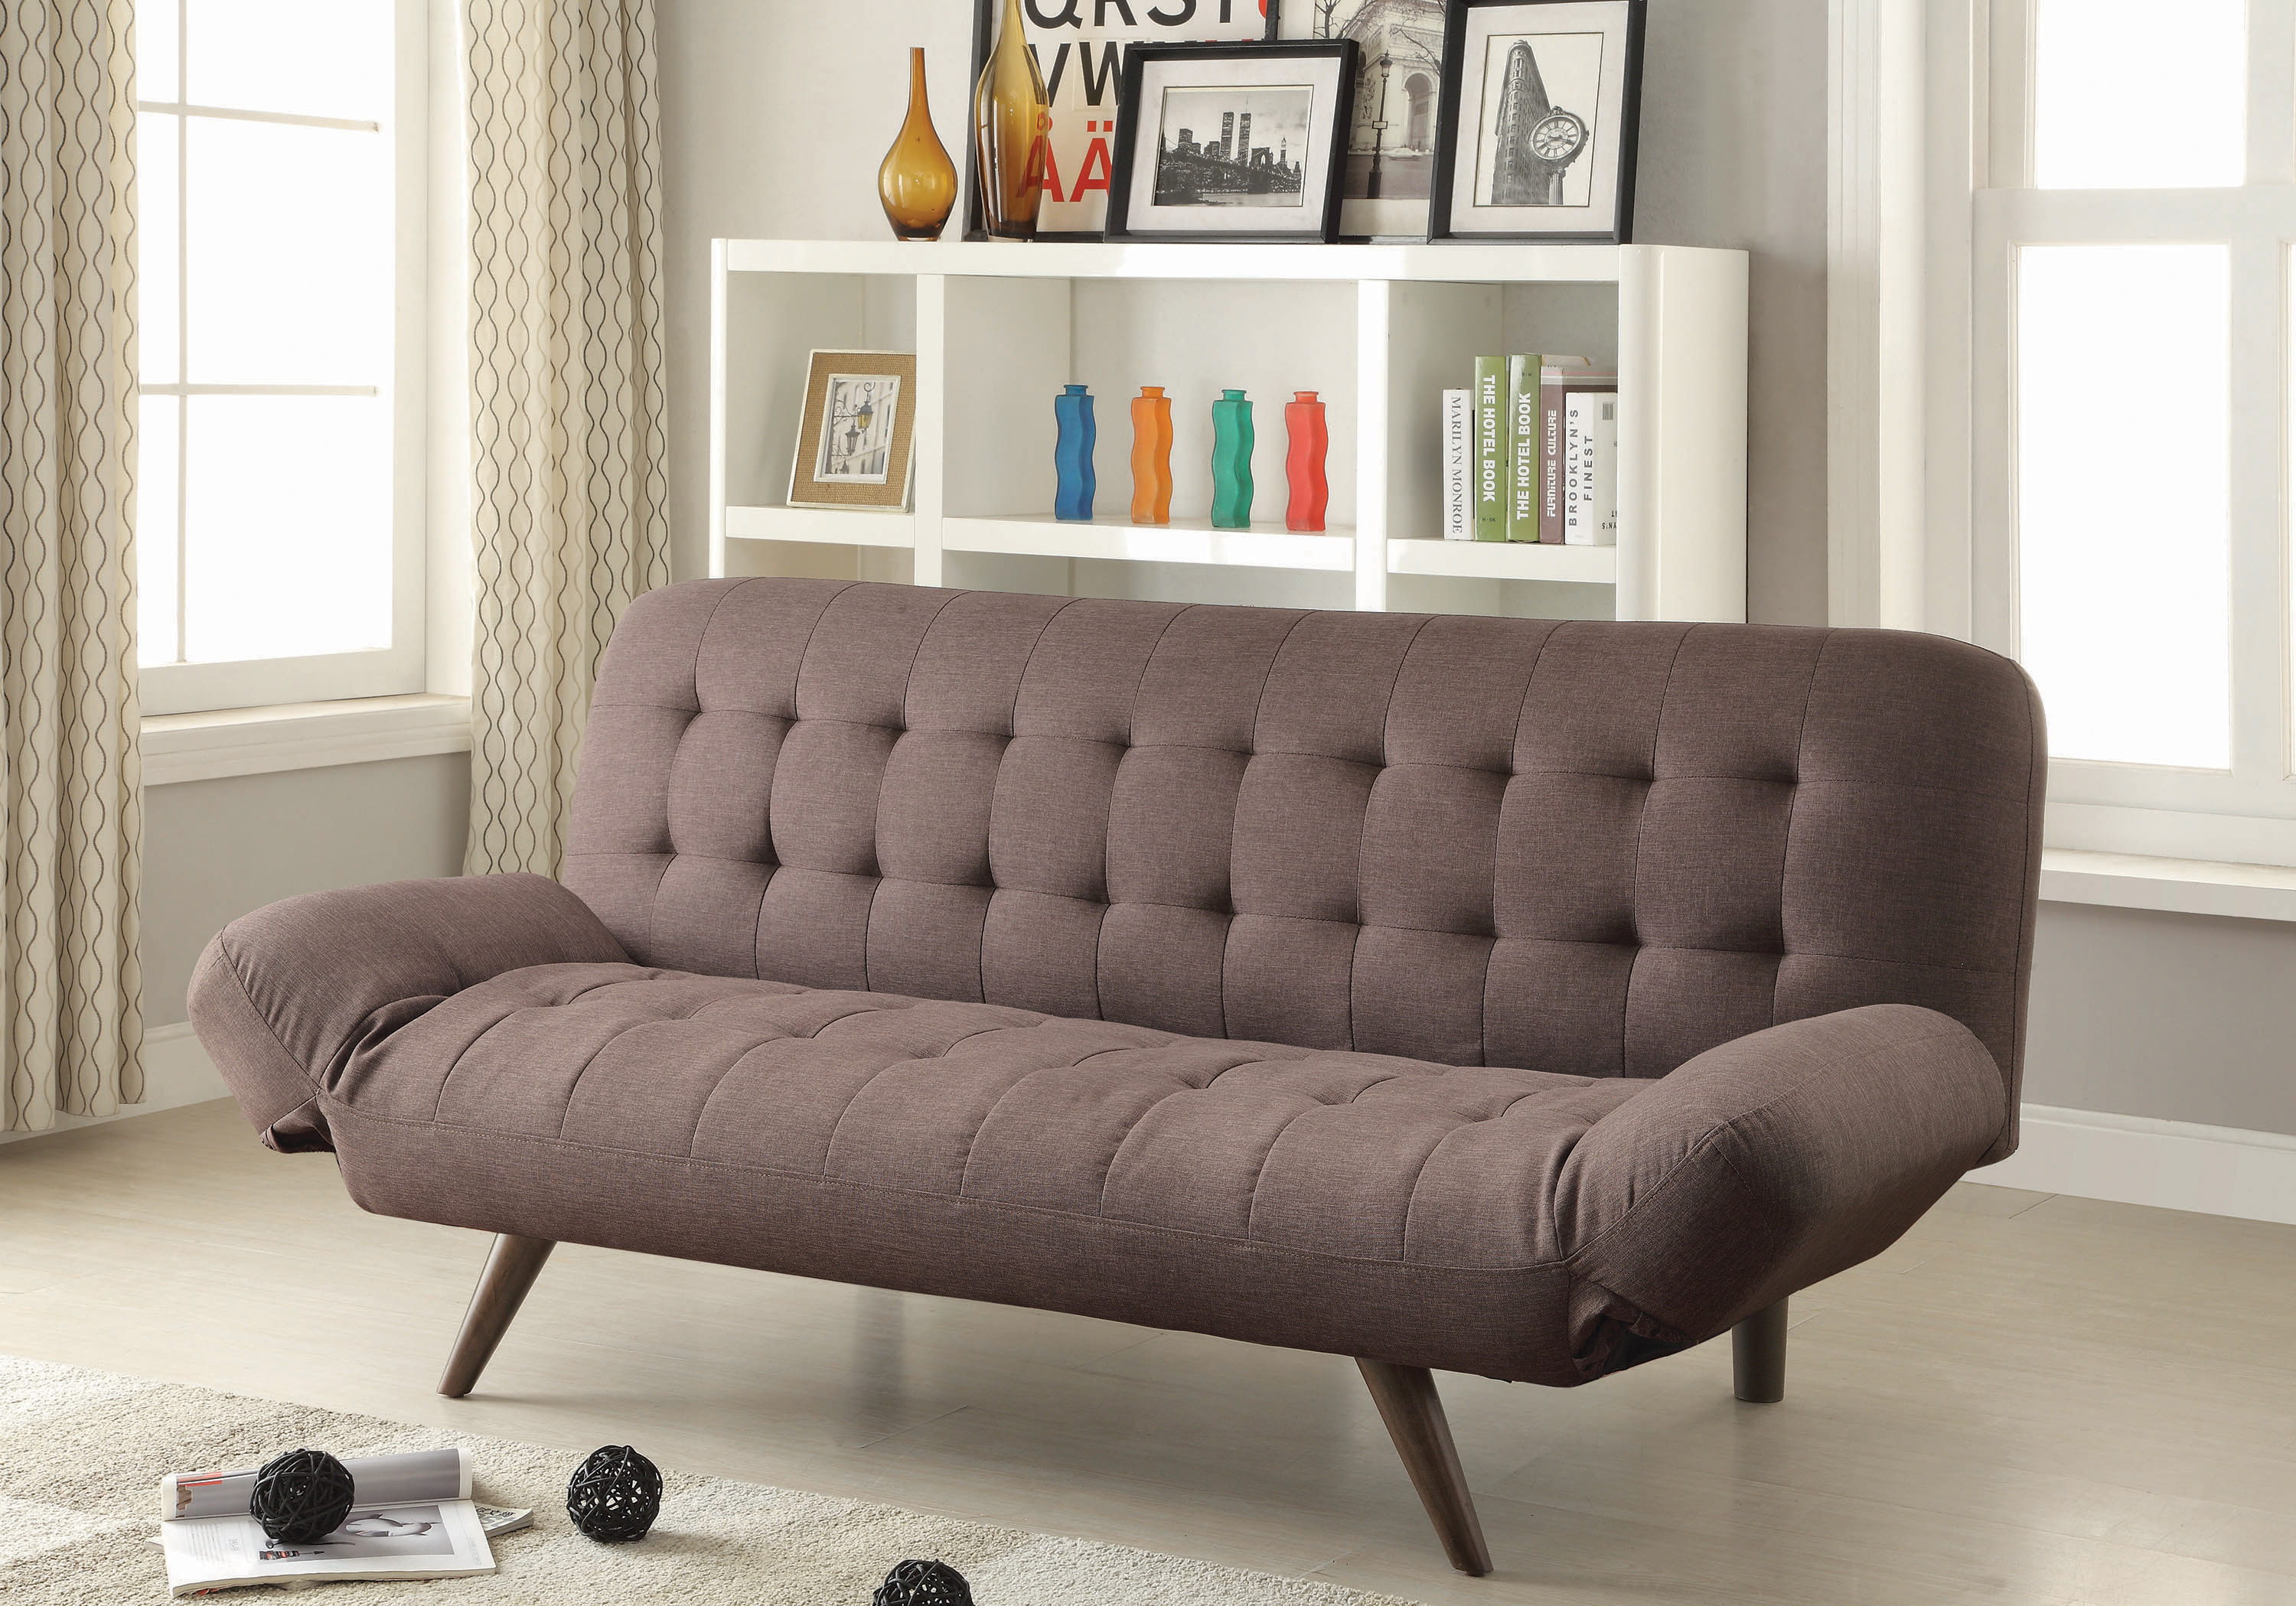 Retro modern sofa bed with tufting & cone legs